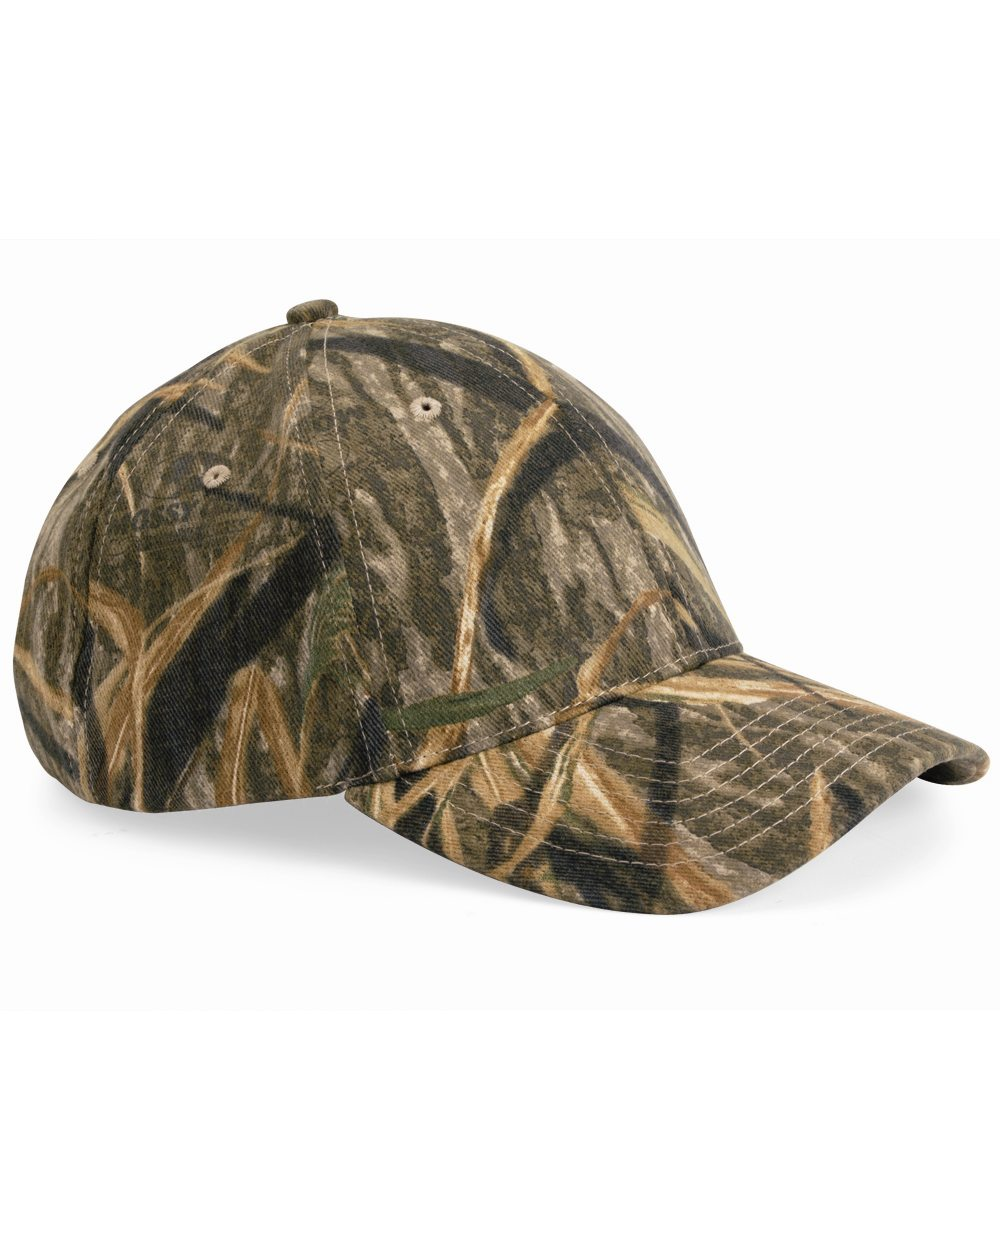 Kati LC10 - Structured Mid Profile Camouflage Cap  4.13 - Headwear dd323adc0fed